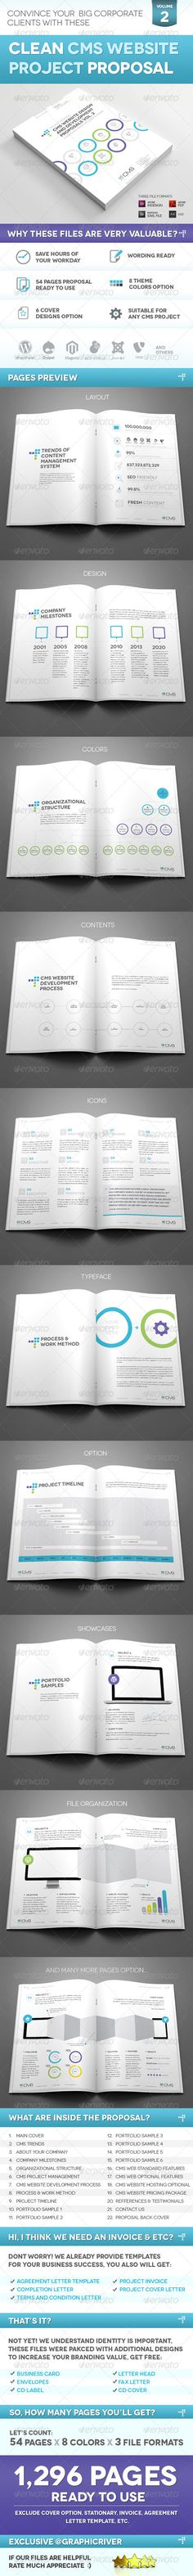 Proposal Proposals, Proposal templates and Project proposal - project proposal letter